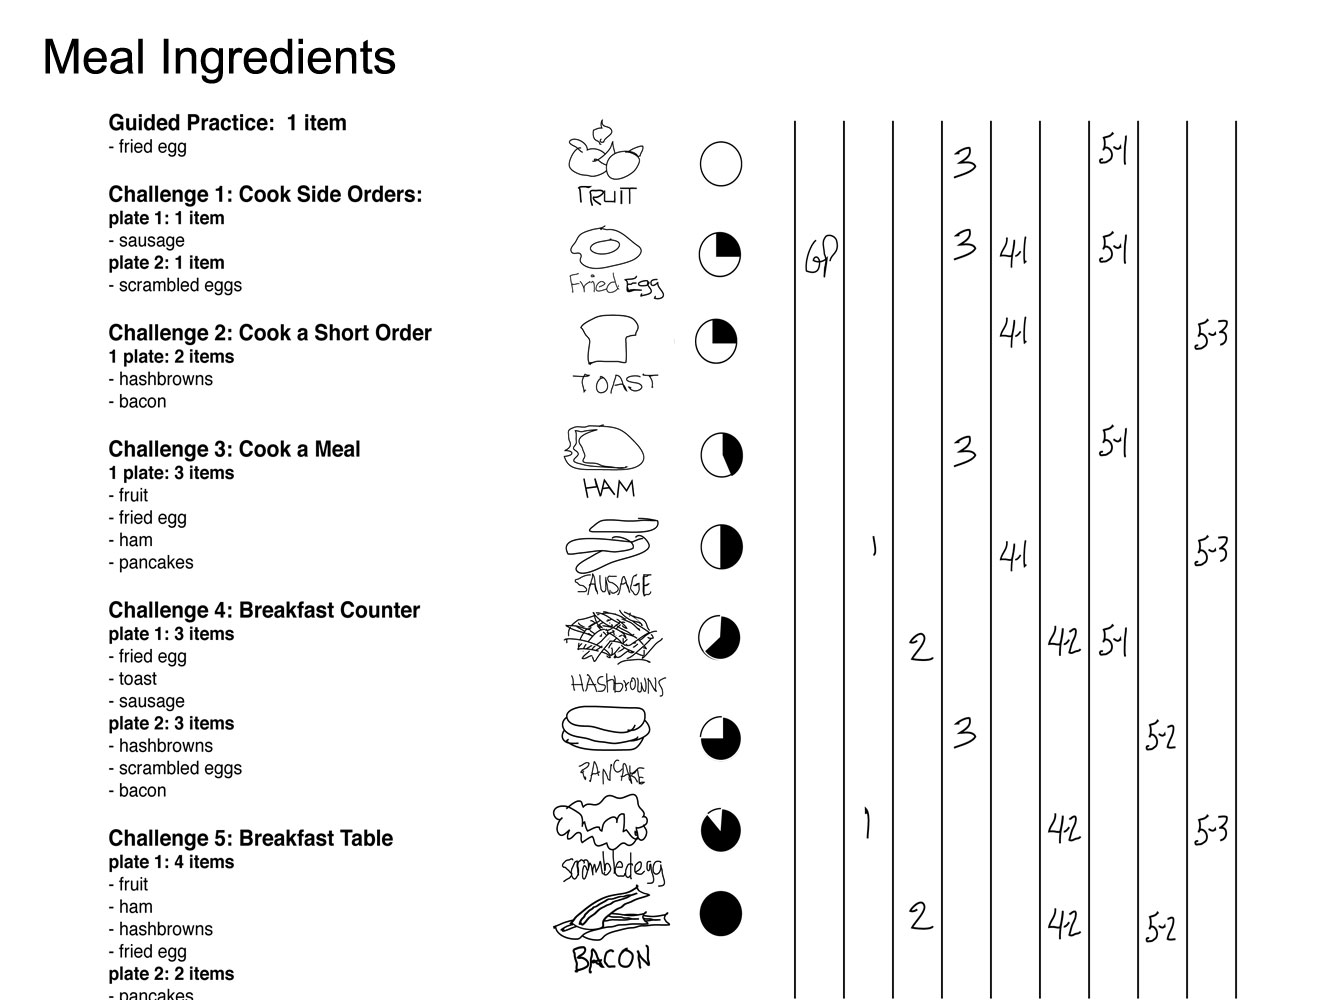 I documented each key feature of the game. This table shows the ingredients for each meal.